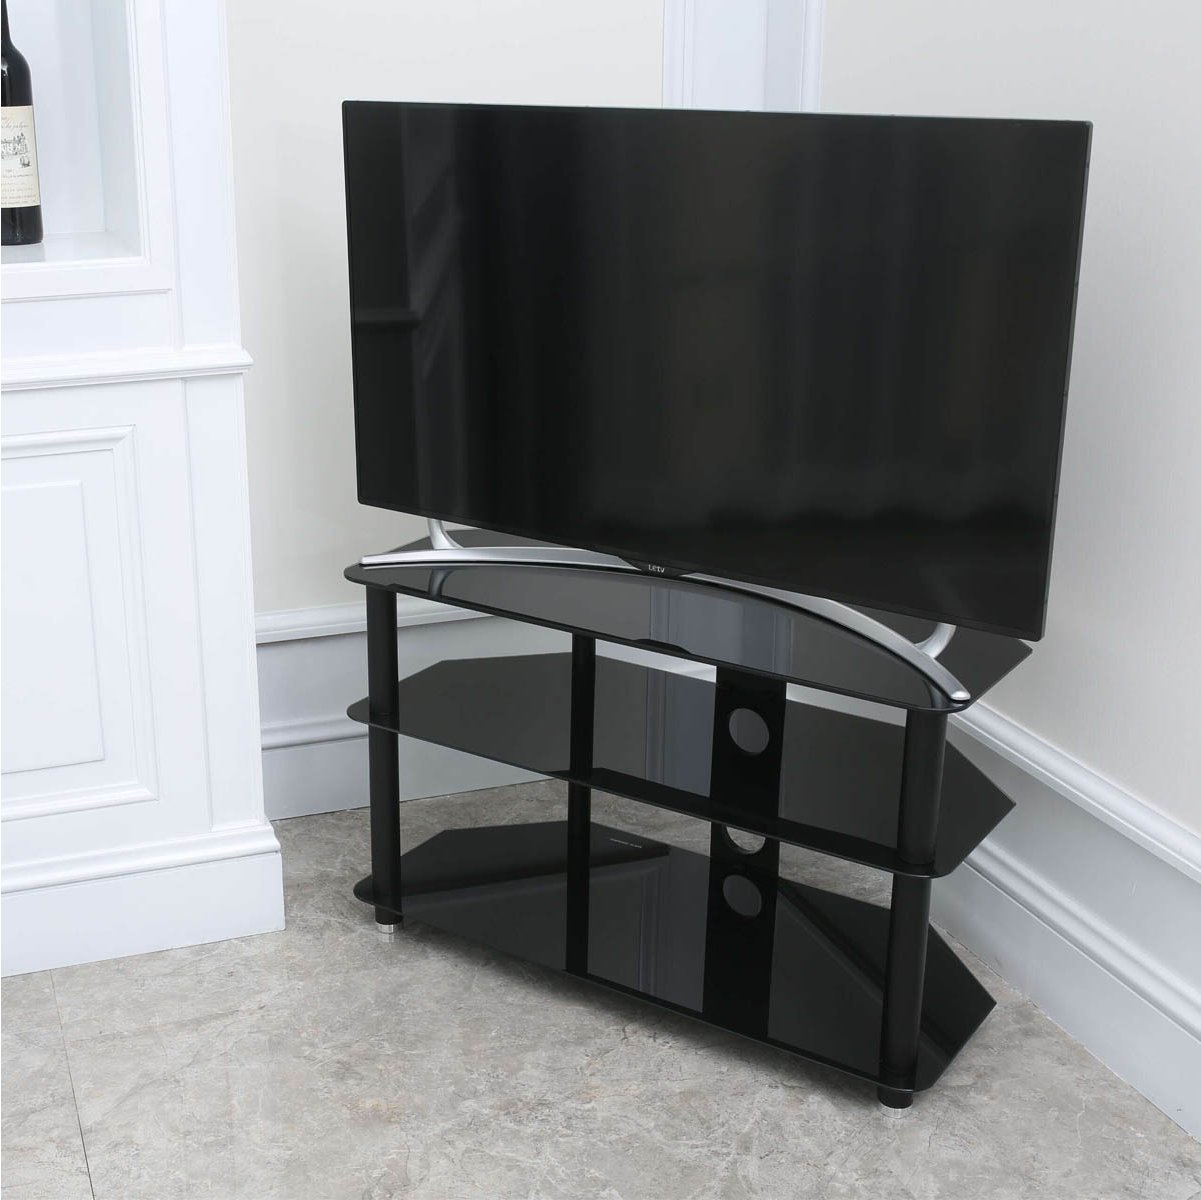 stealth mounts 1000mm black glass tv stand for tvs up to 50 alternative image